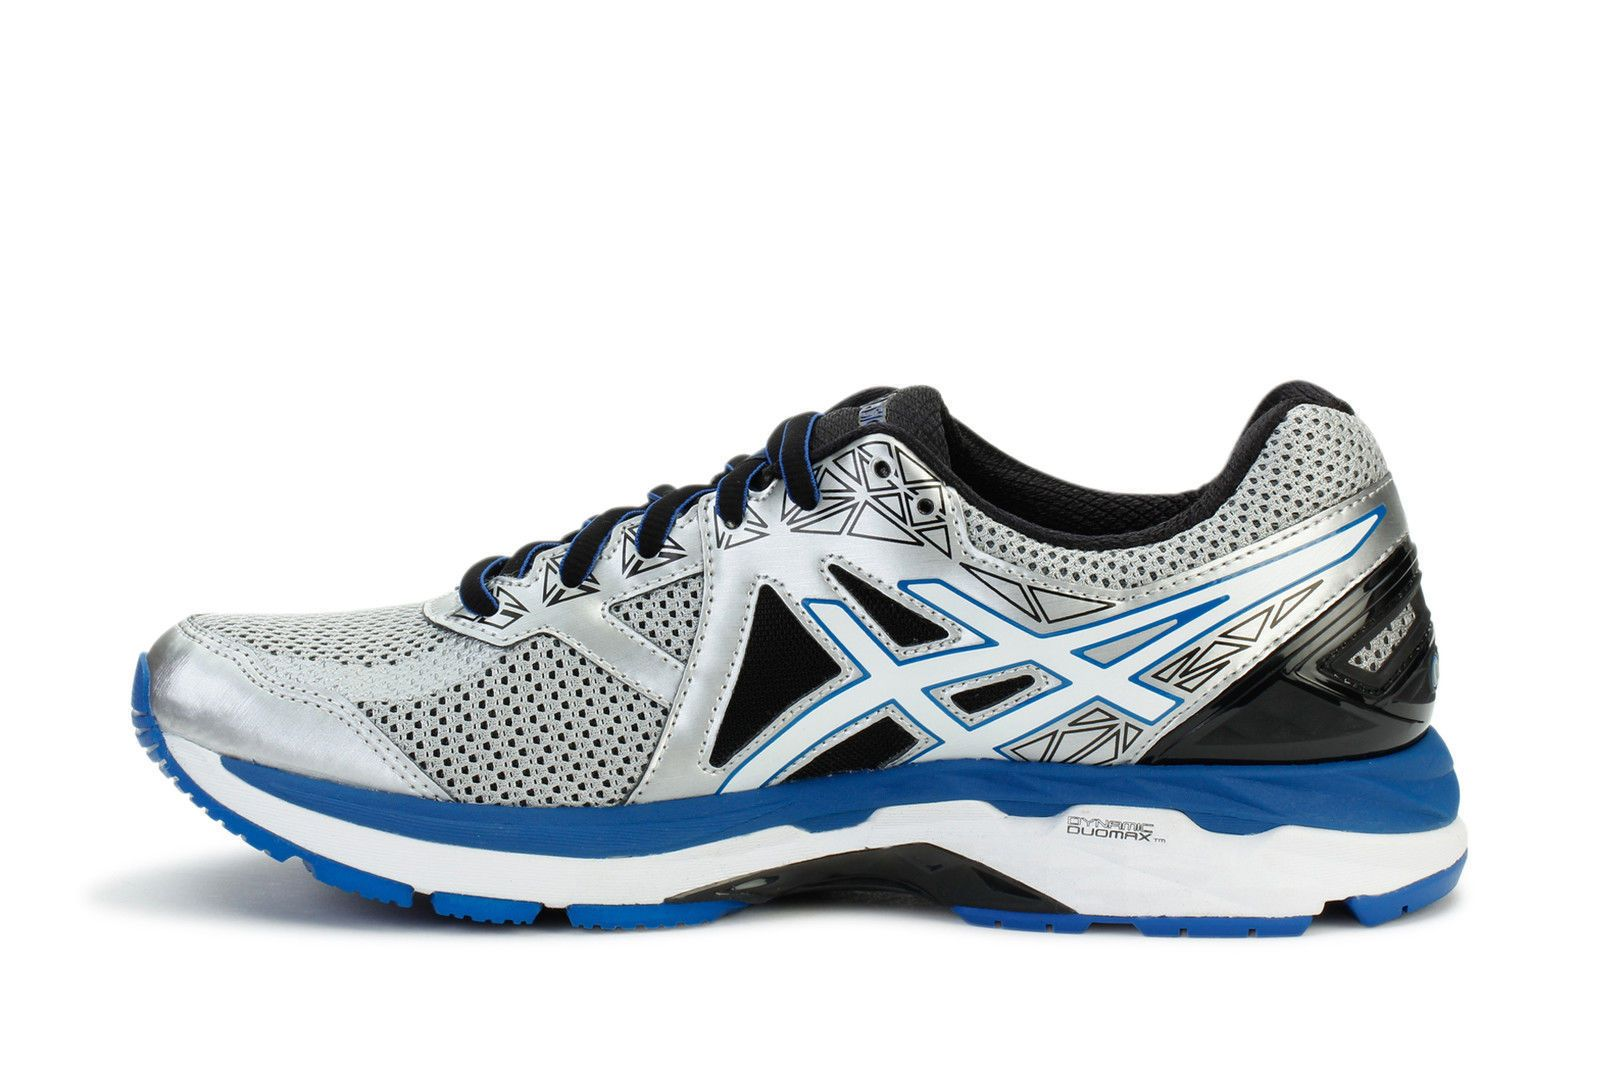 Running Gt 2000 Black Blue Shoes Silver V4 T606n Mens White Asics wICq7gdg